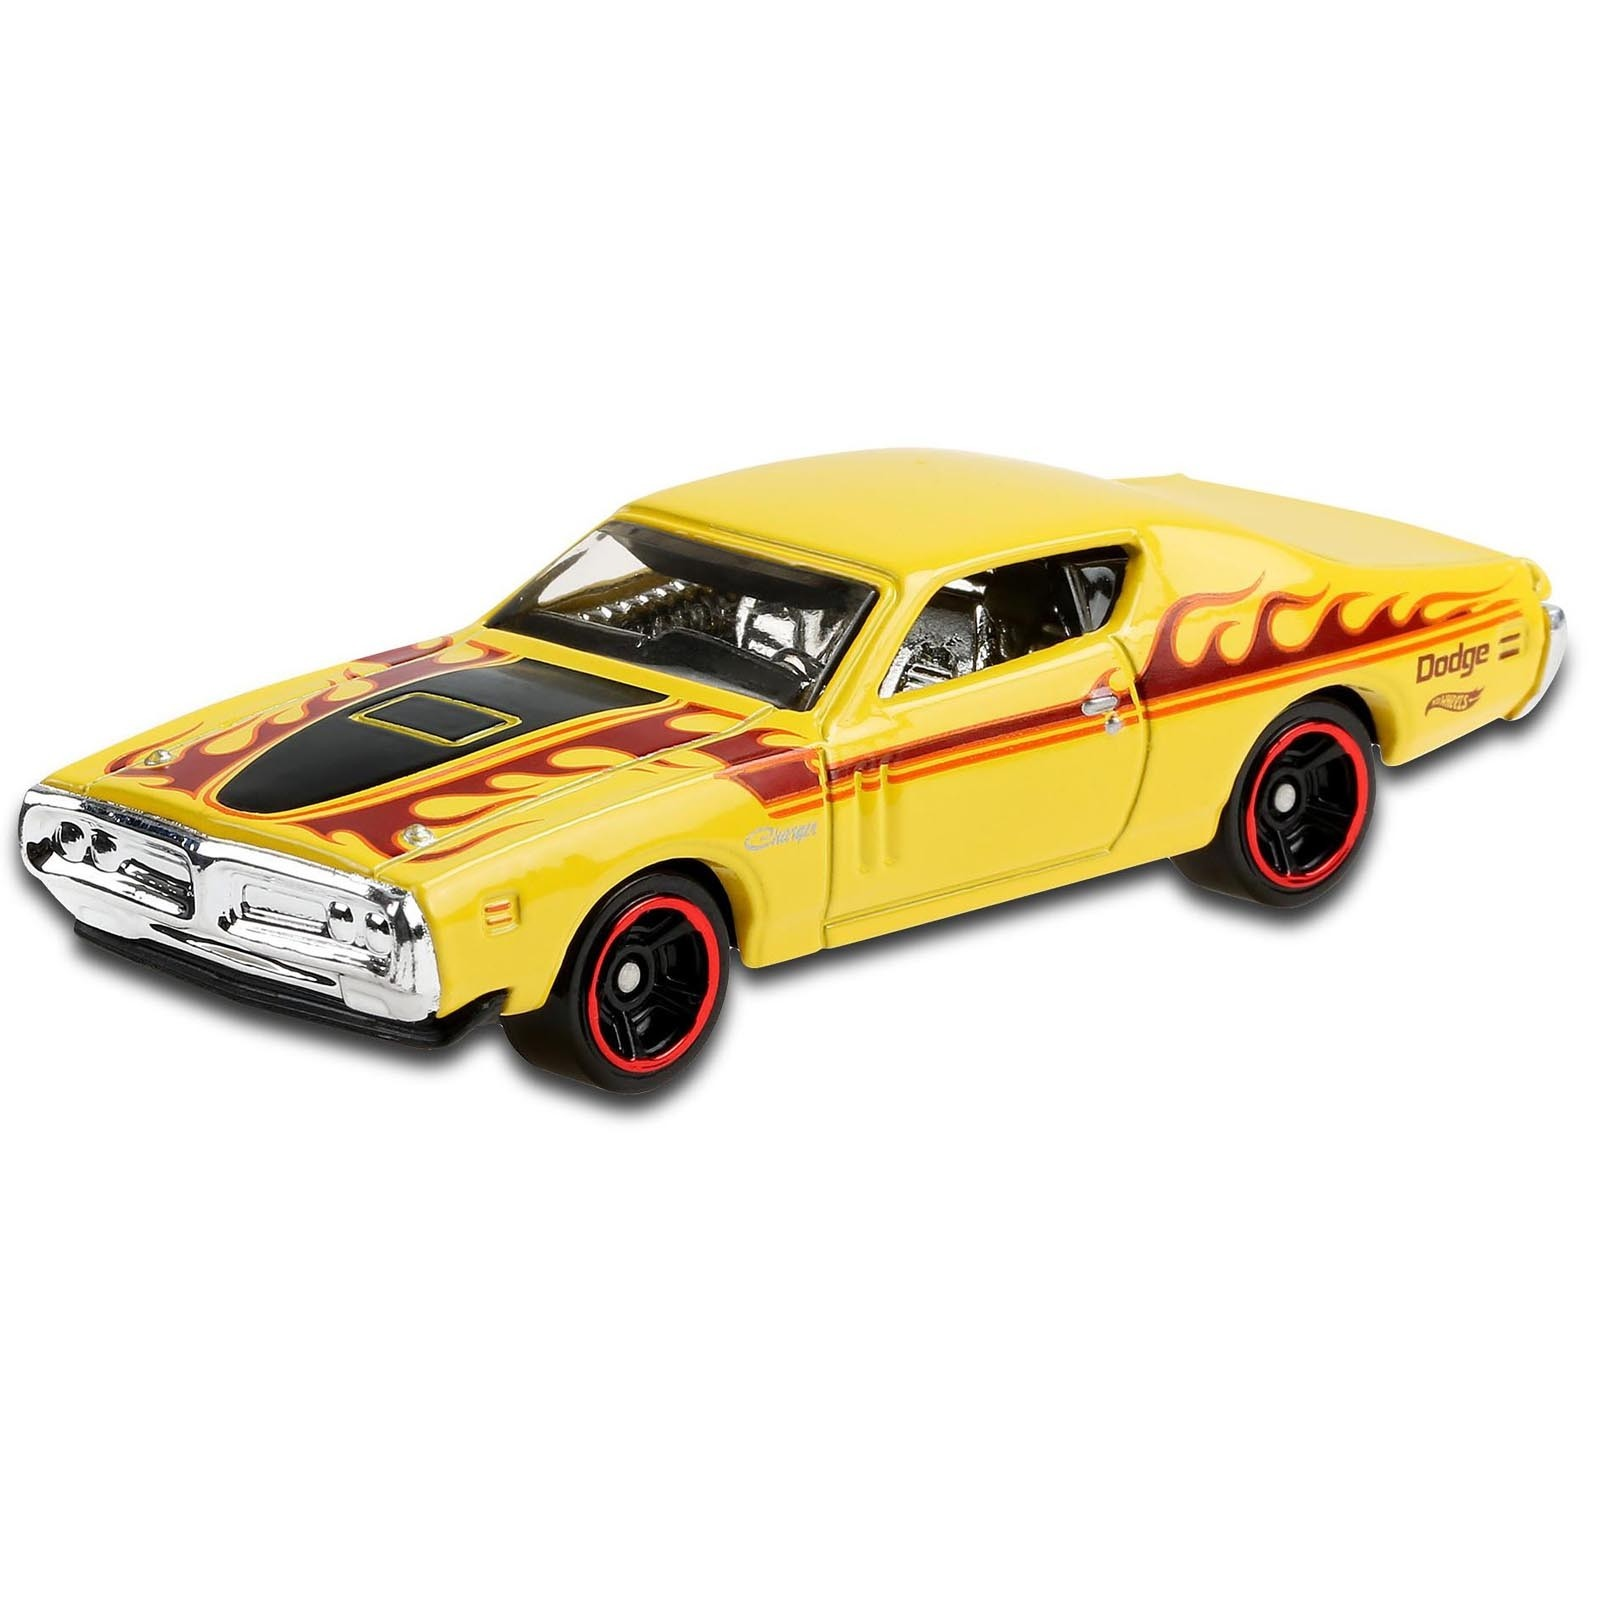 Hot Wheels - 71 Dodge Charger - GHD64